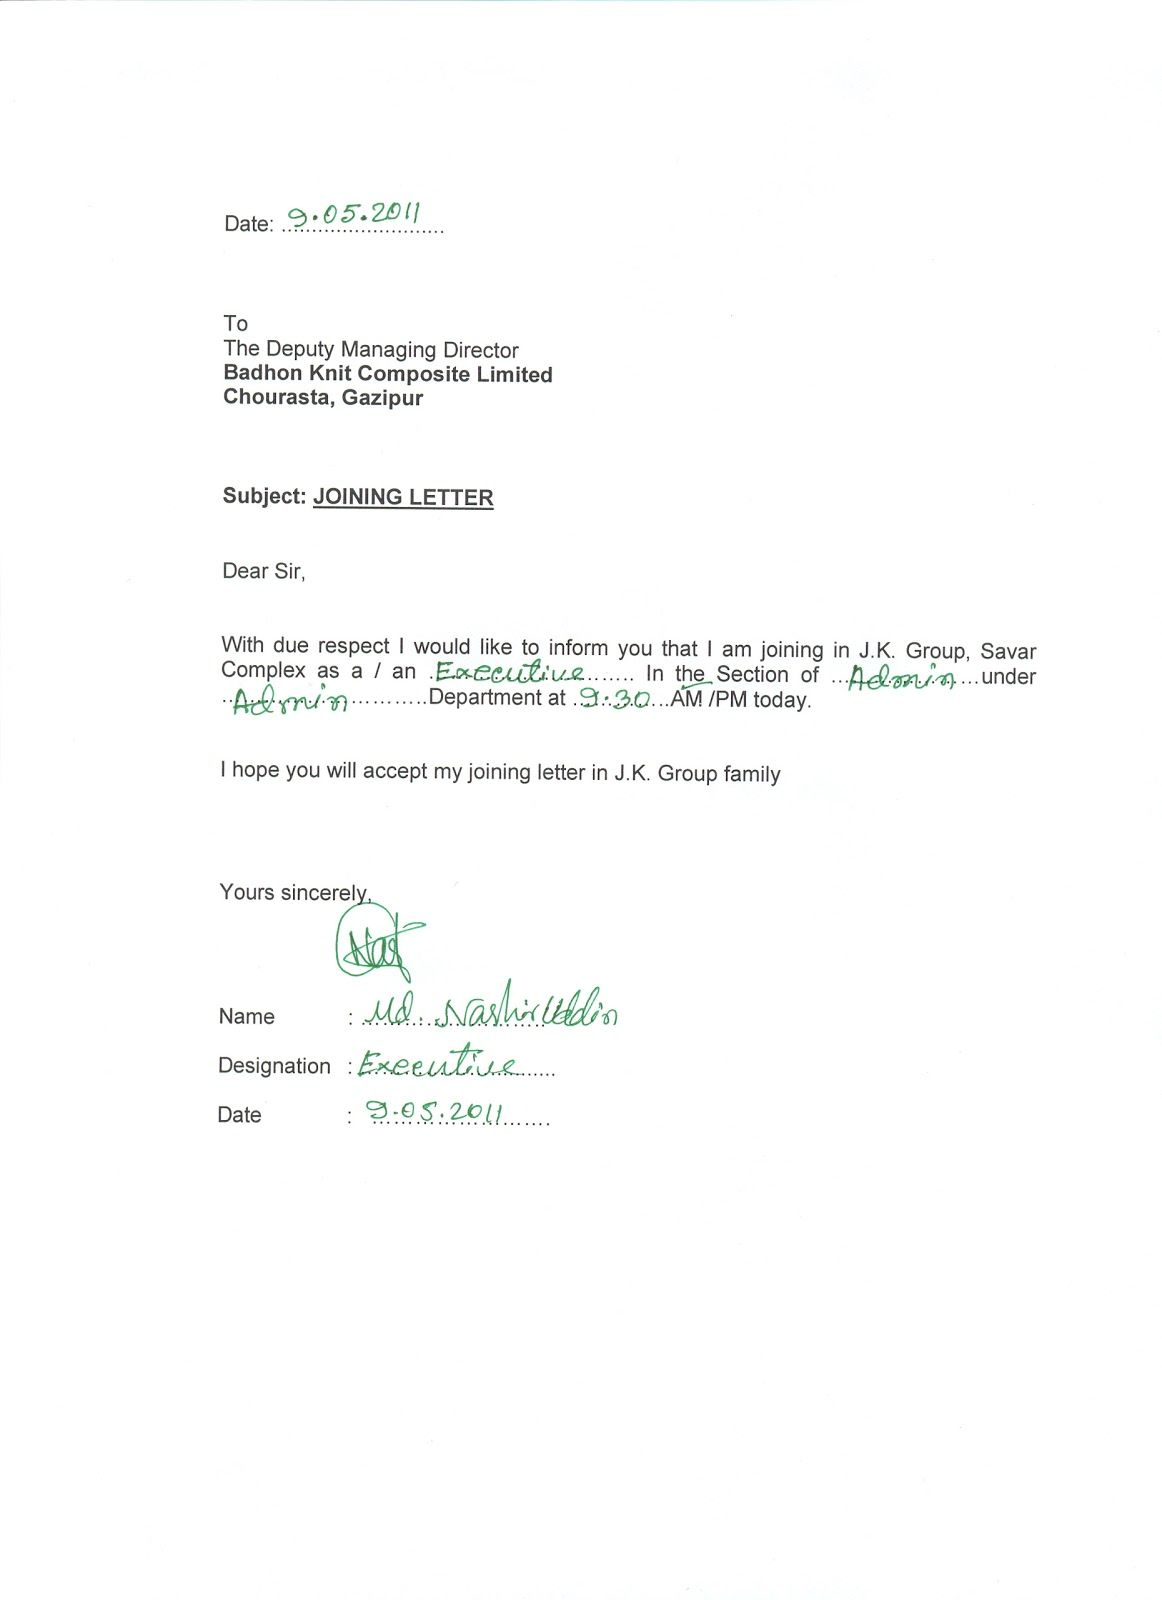 Appointment letter format management trainee acting two open joining letter format for employee appointment templates free sample example altavistaventures Image collections